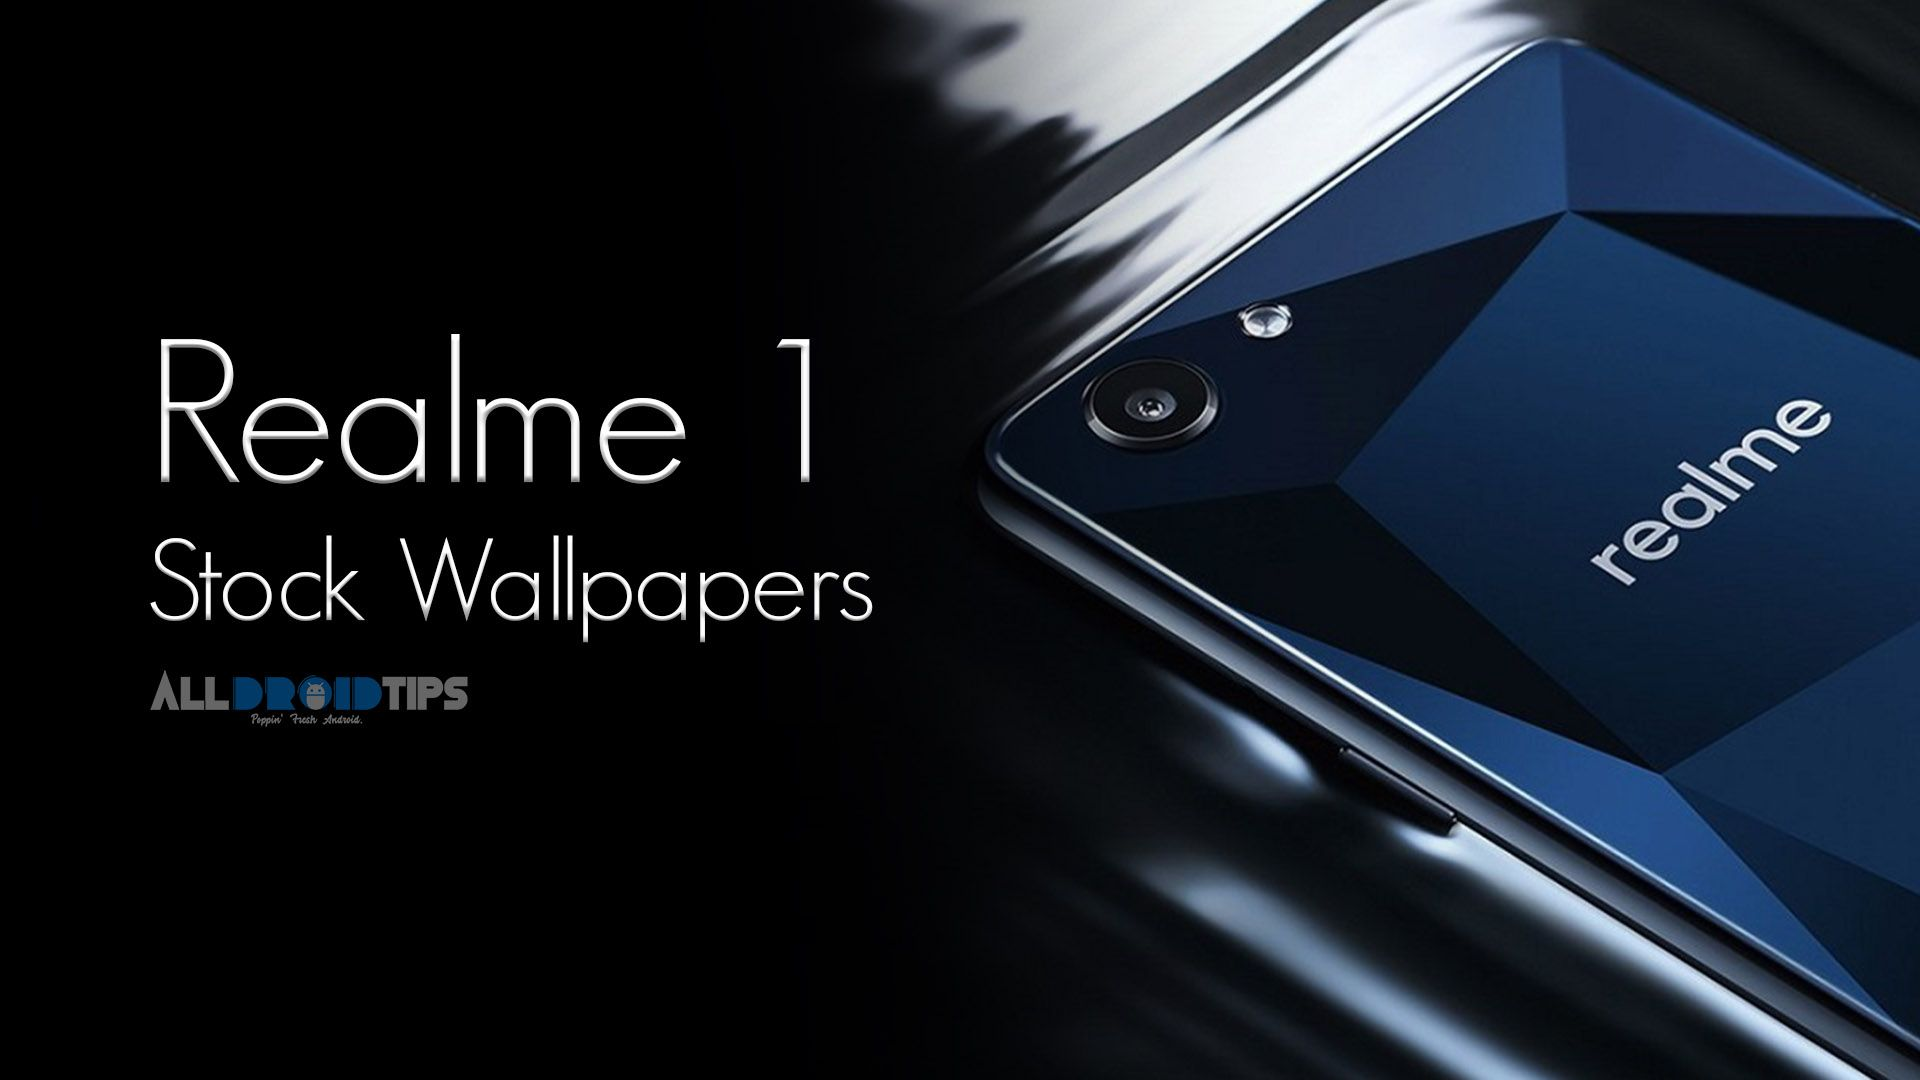 Here In This Post We Share Oppo Realme One Stock Wallpapers In Full